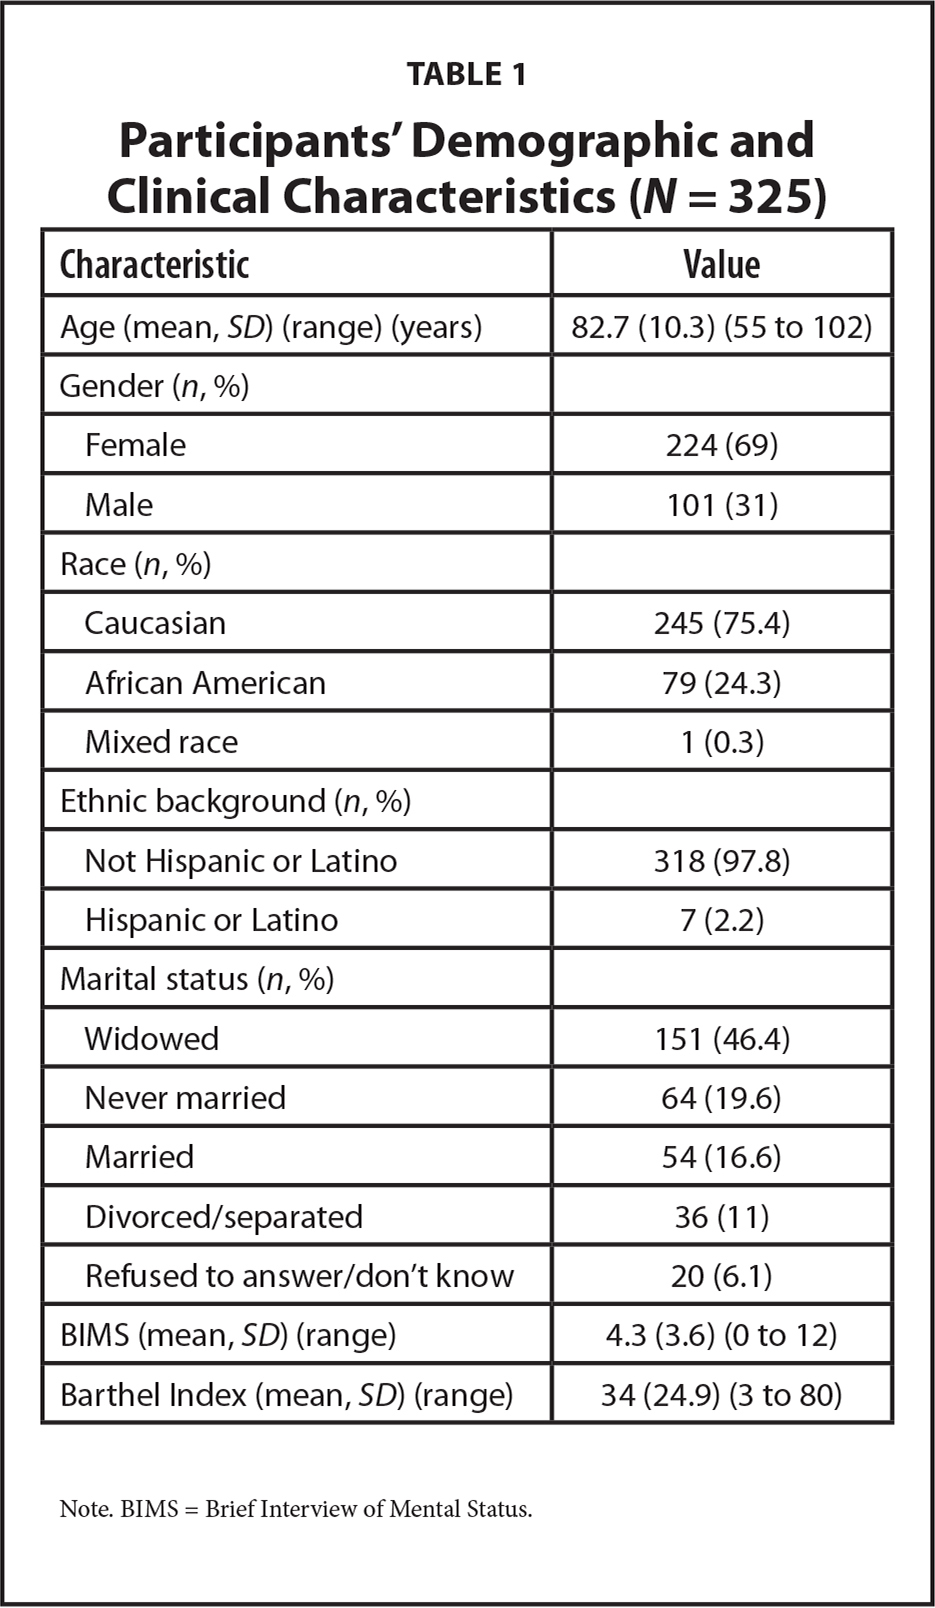 Participants' Demographic and Clinical Characteristics (N = 325)